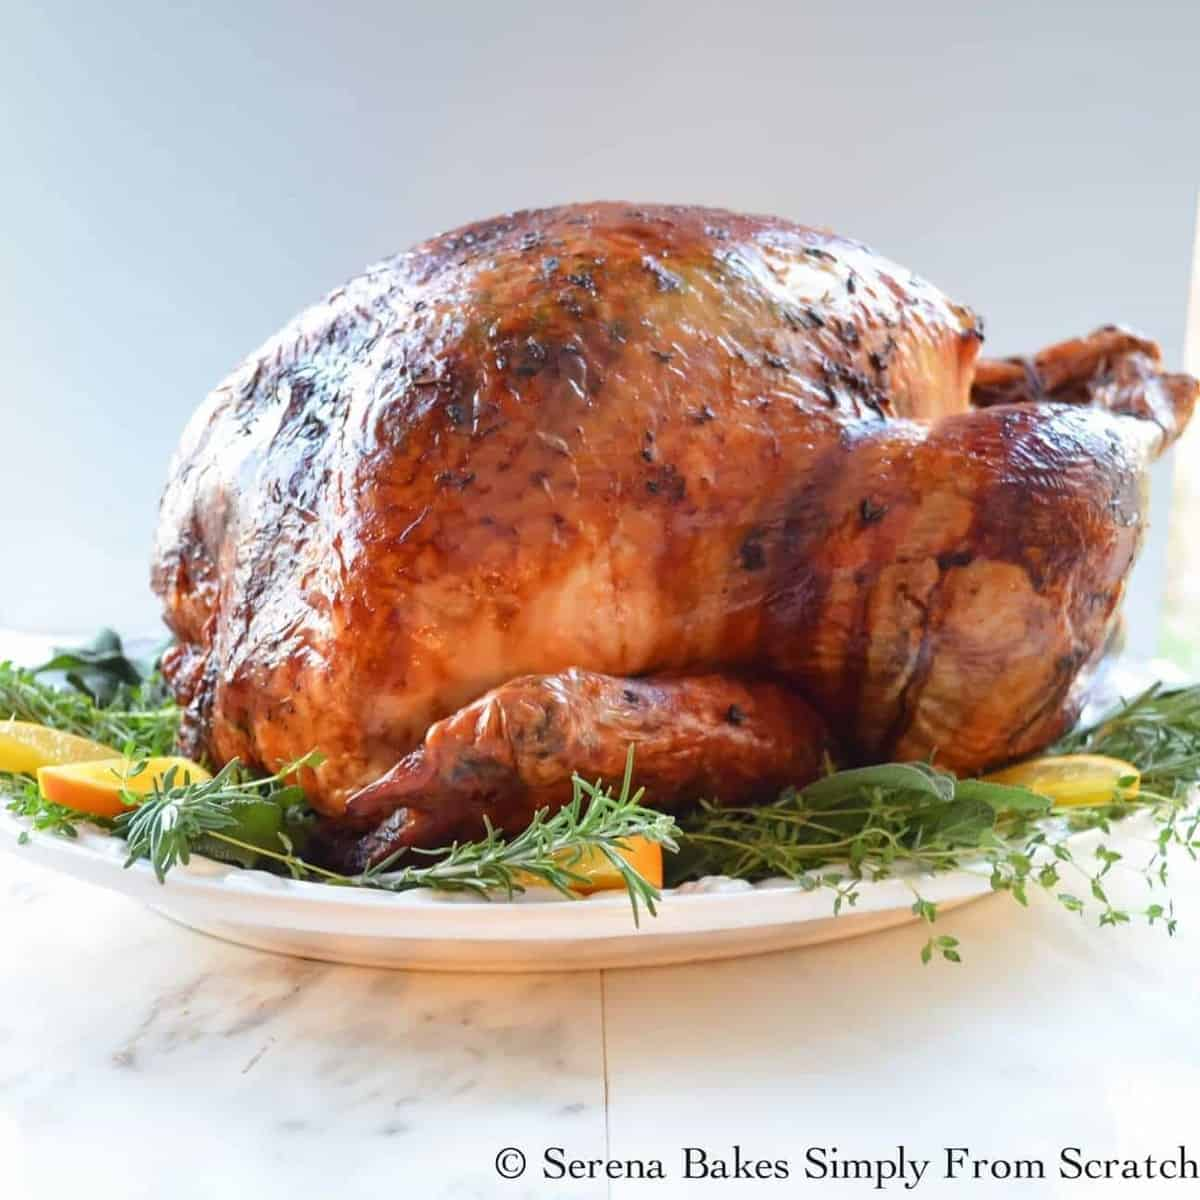 Super Moist Turkey Baked in Cheesecloth by Serena Bakes Simply From Scratch